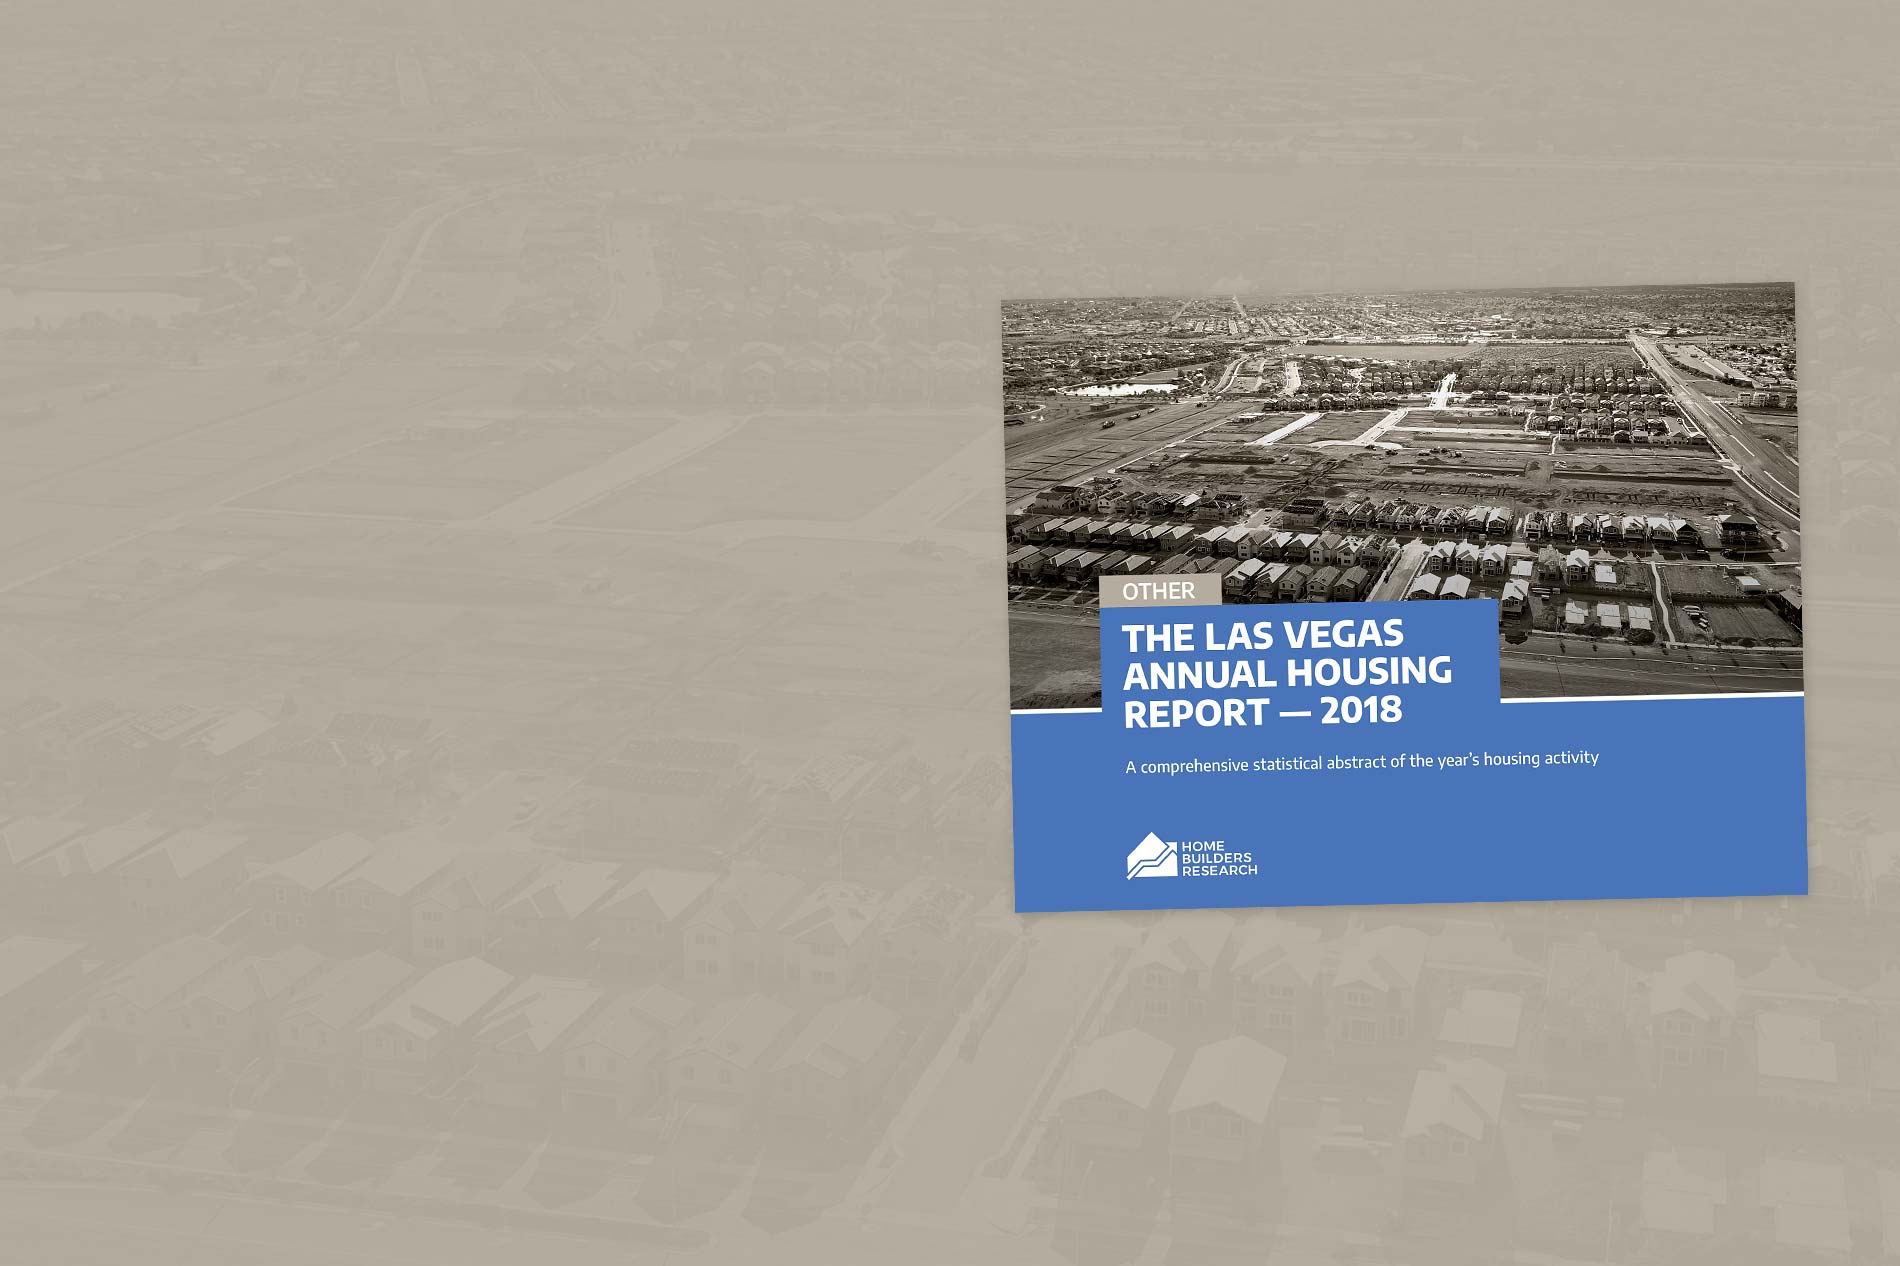 2018 Las Vegas Annual Housing Report